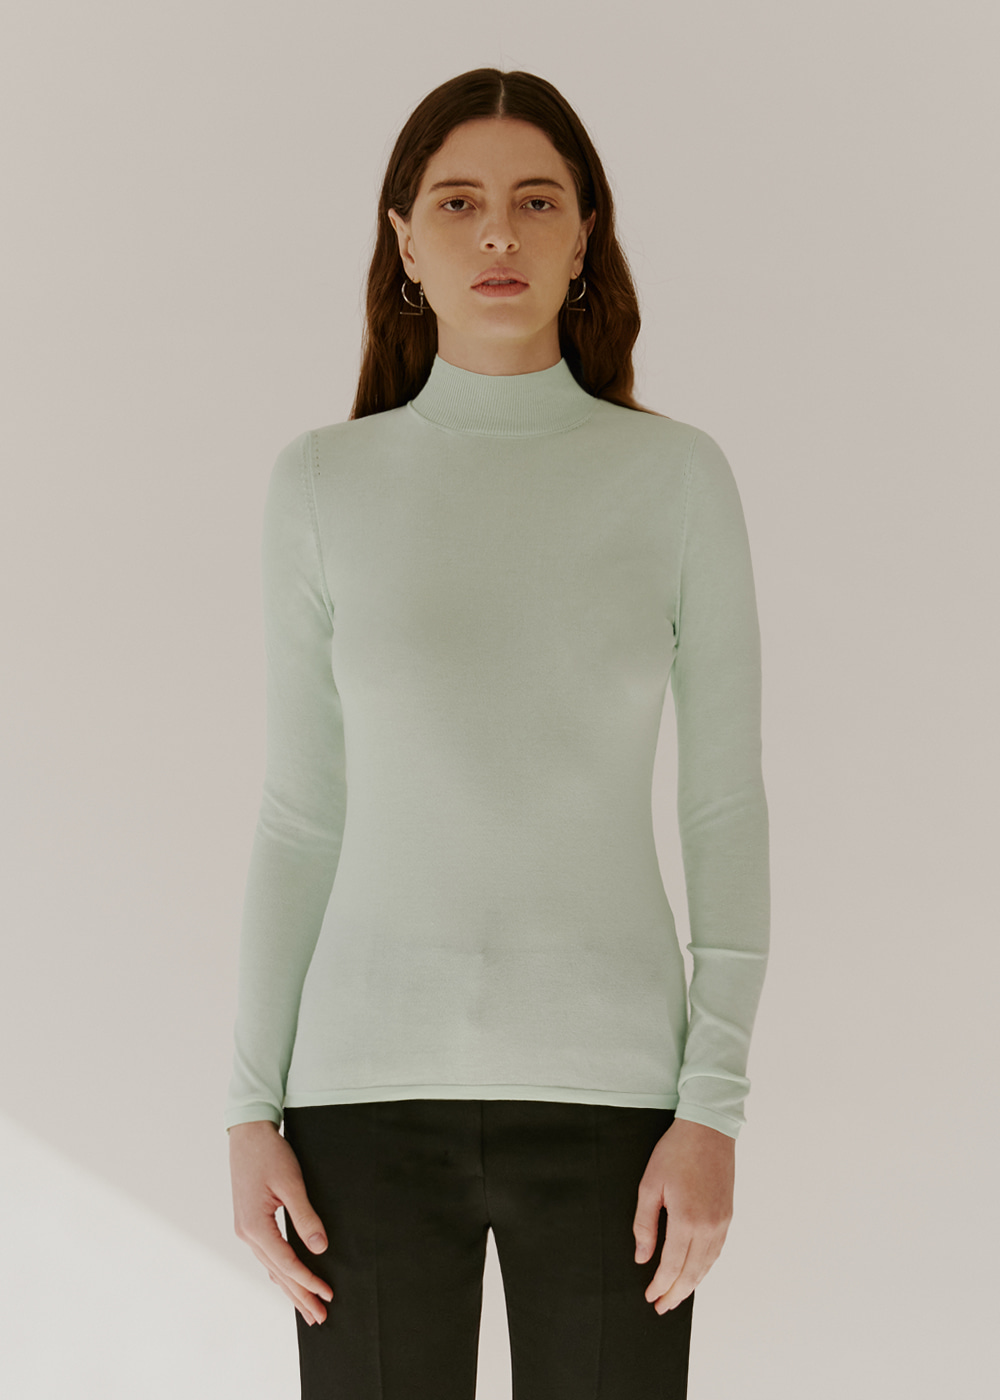 COTTON-BLEND KNIT - MINT CREAM